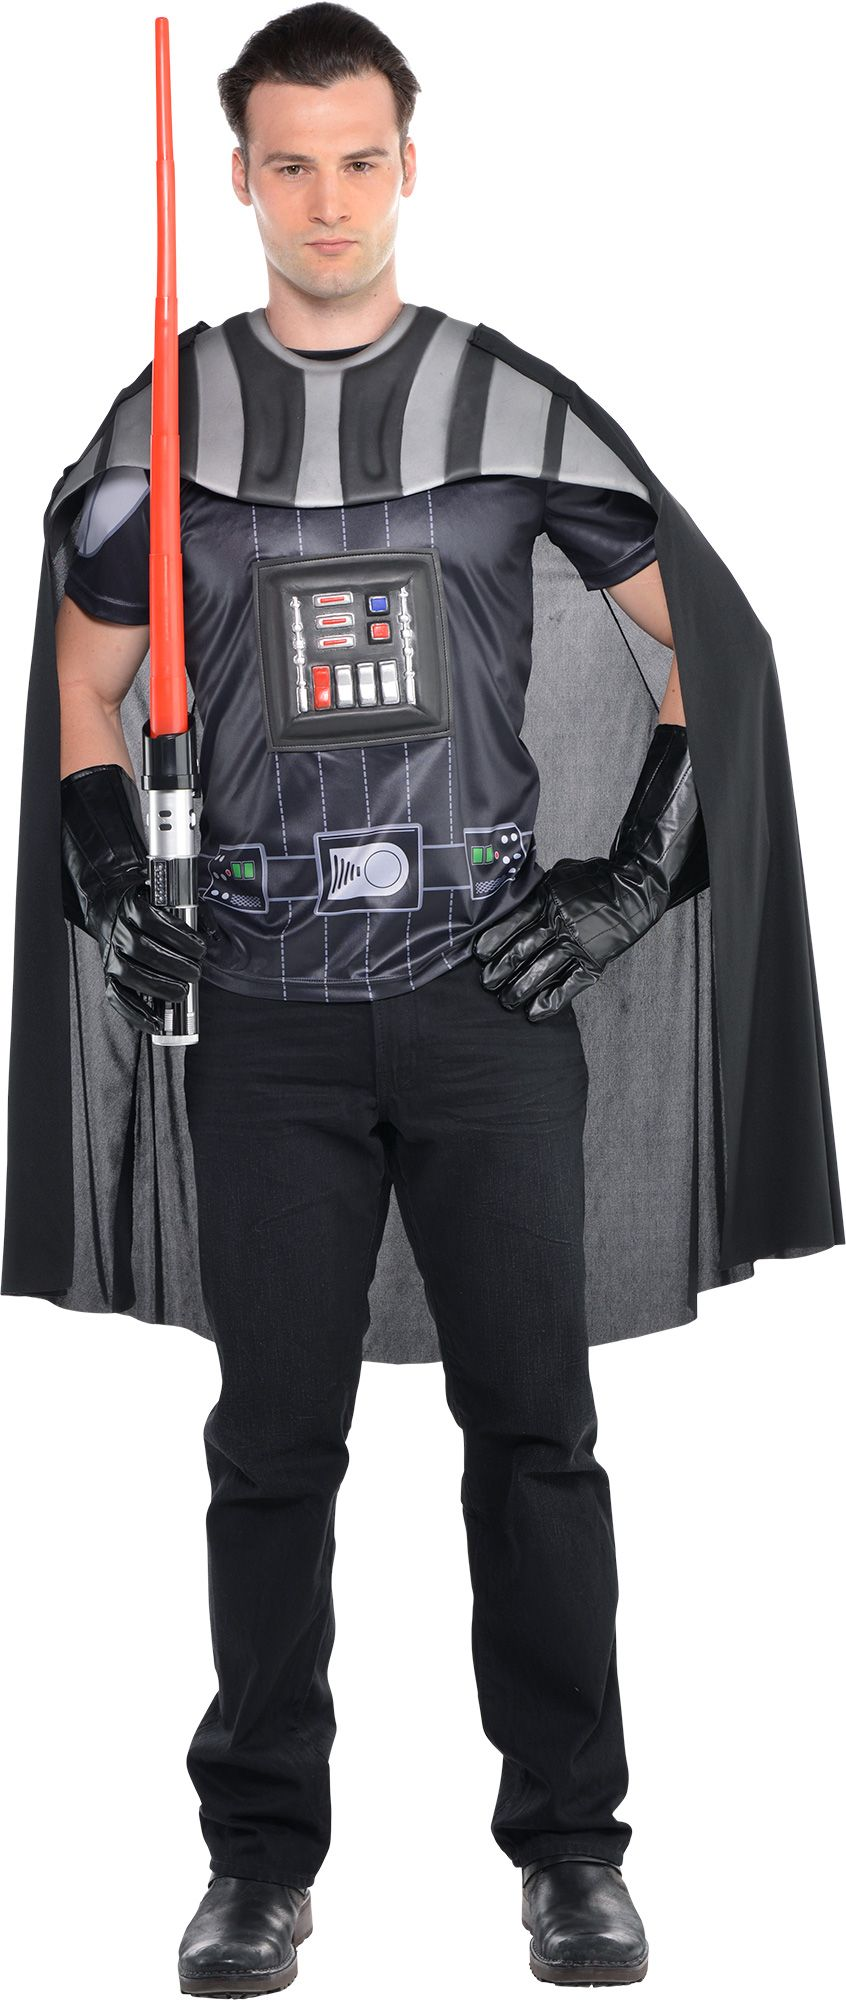 Make Your Costume - Mens Darth Vader #2